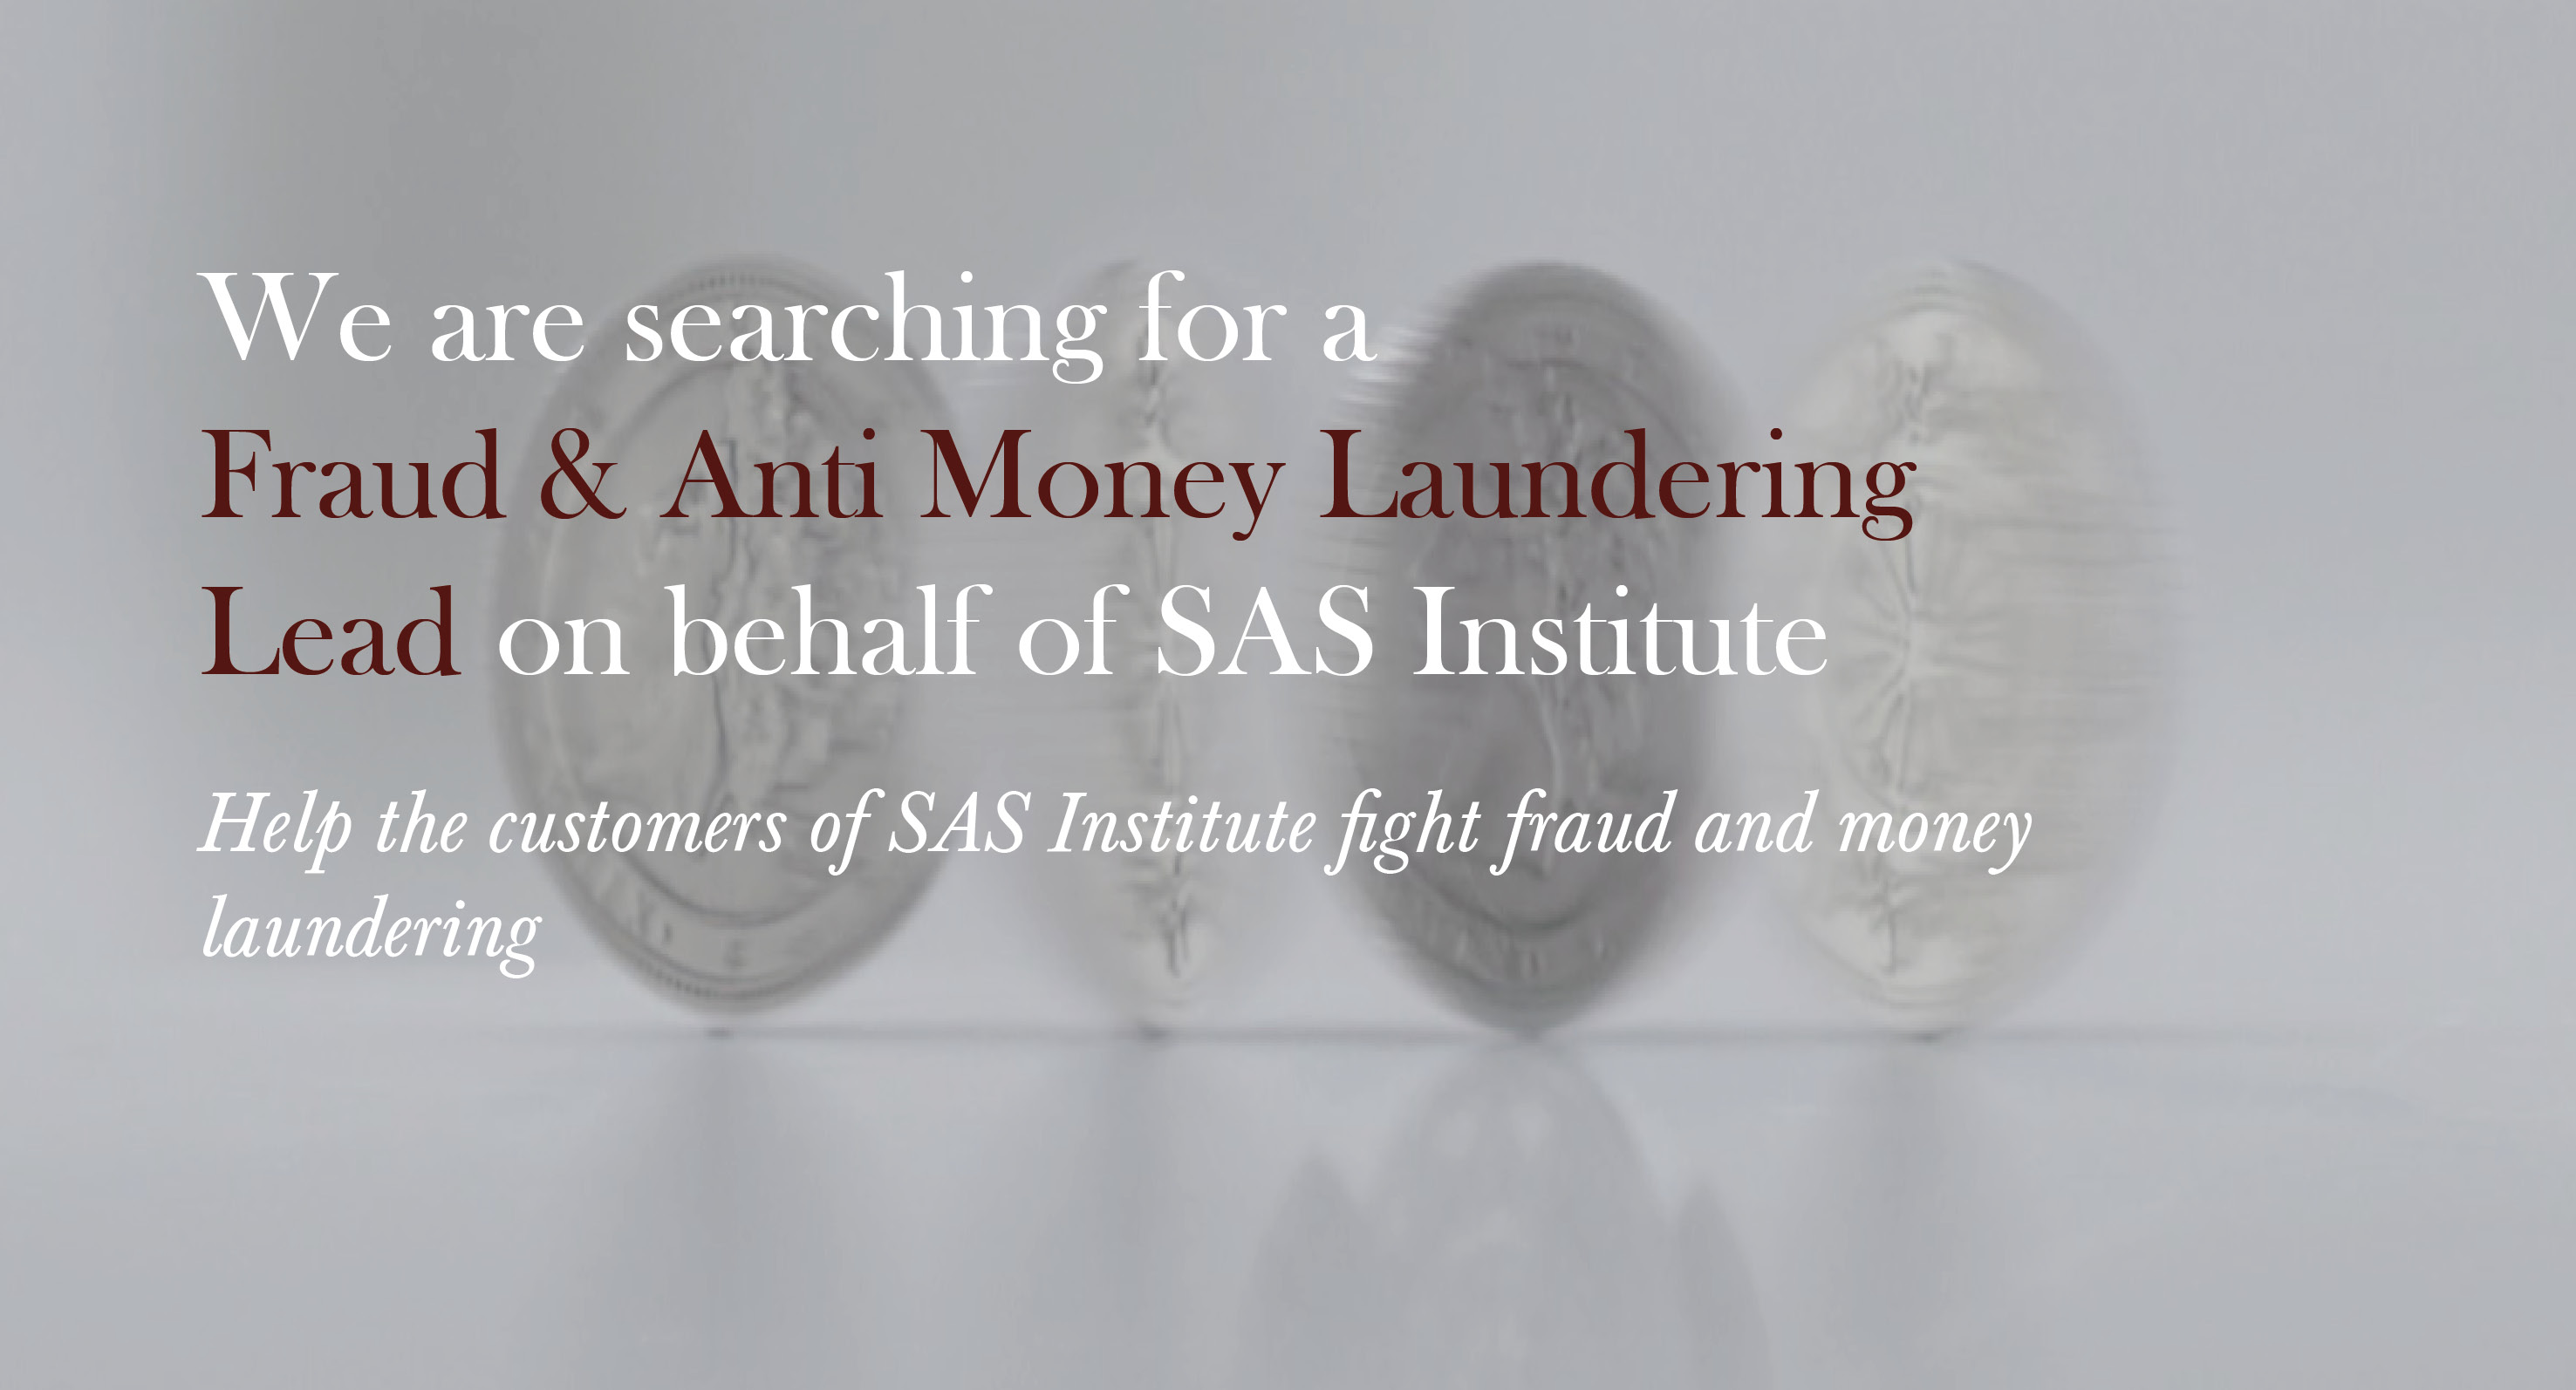 Fraud and AML Lead - SAS Institute